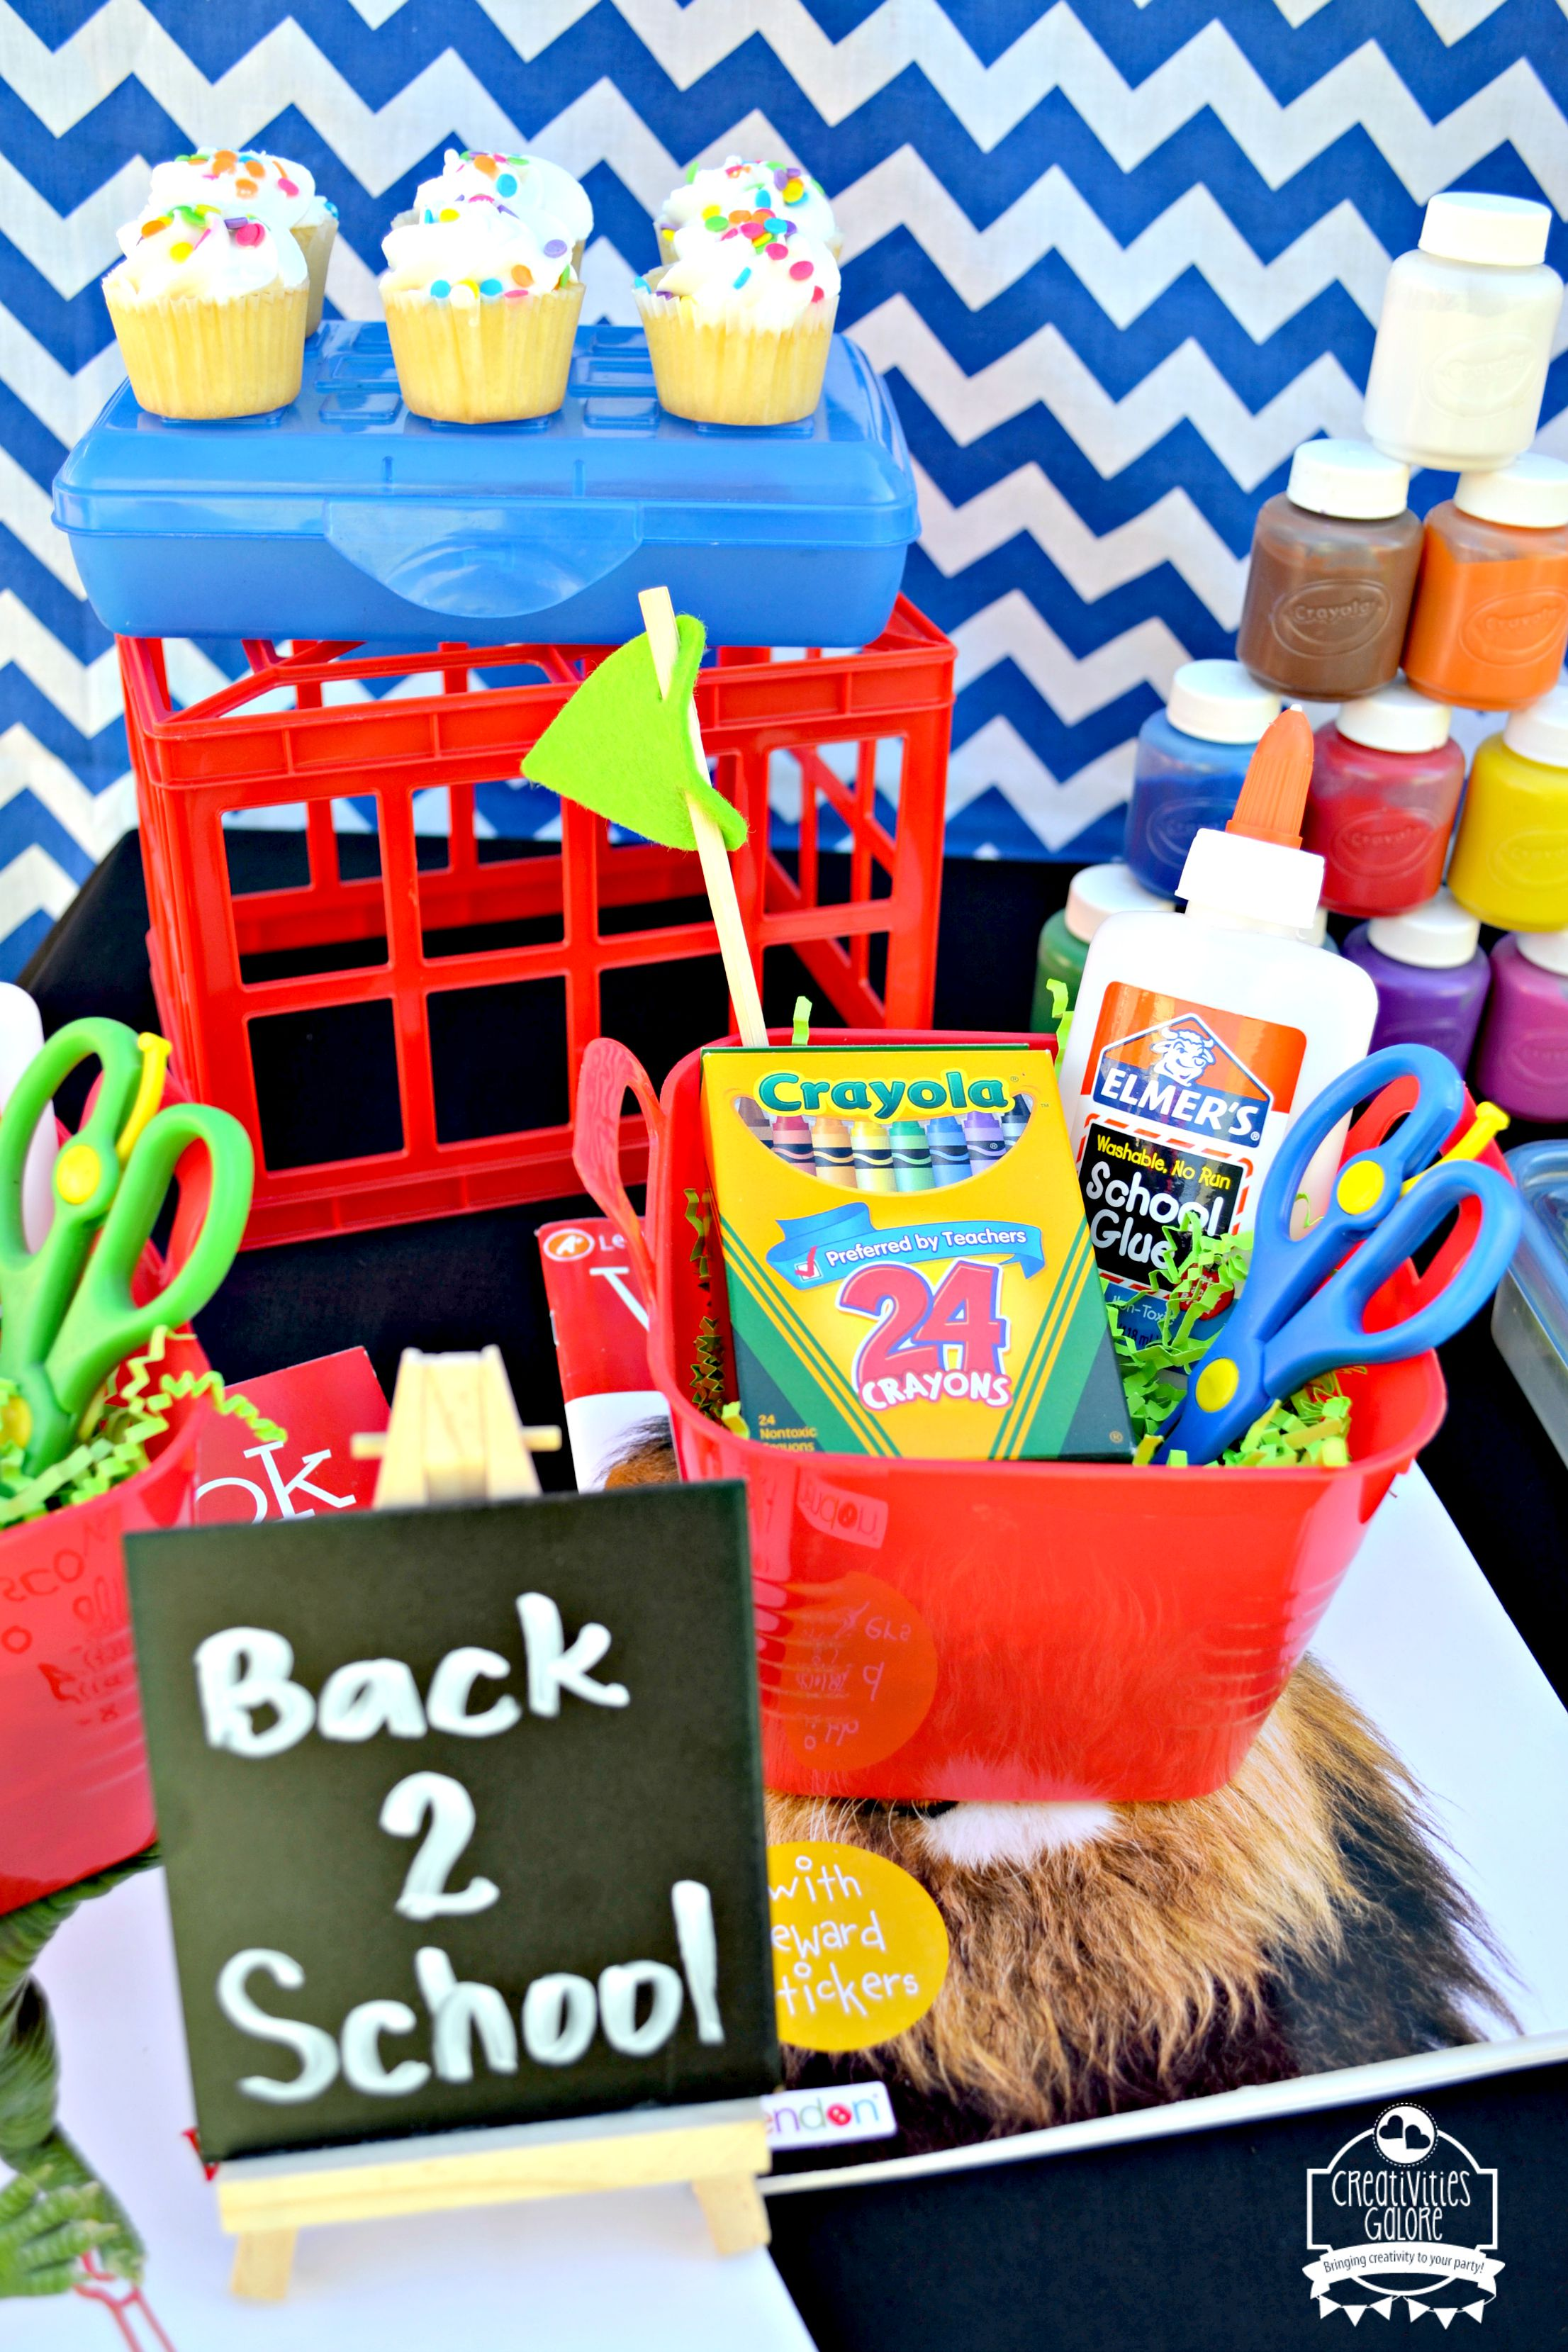 Back to school party ideas creativities galore for Back to school decoration ideas